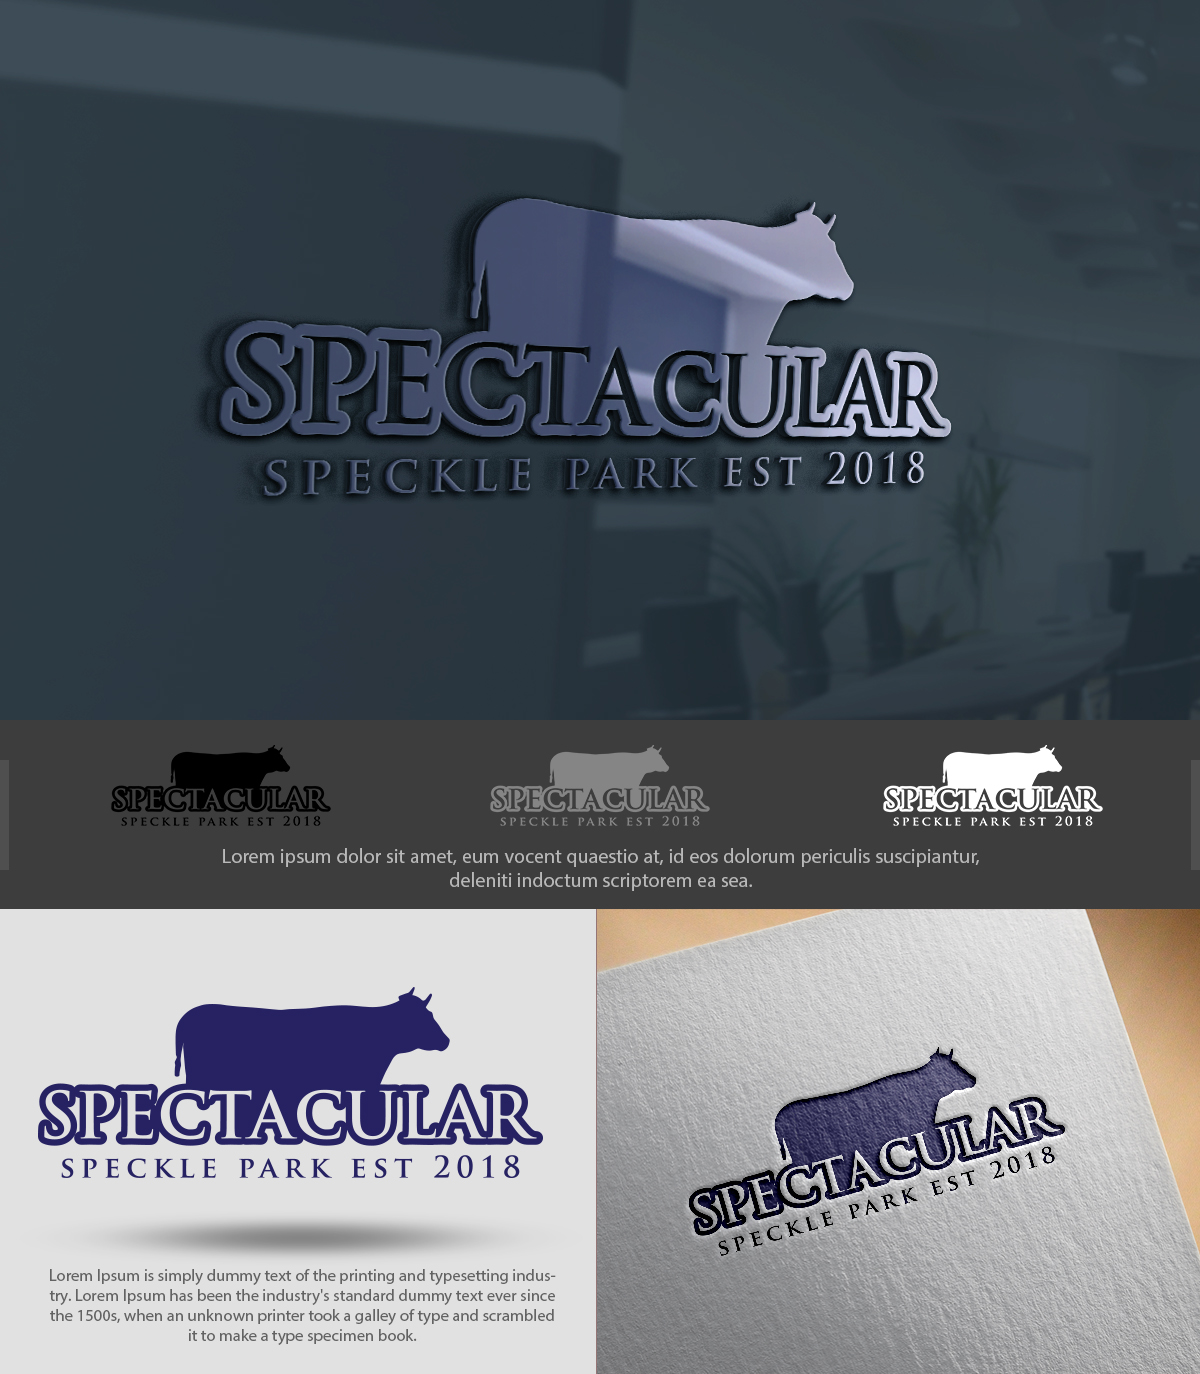 Logo Design for SPECTACULAR SPECKLE PARK EST 2018 by artmarque 2